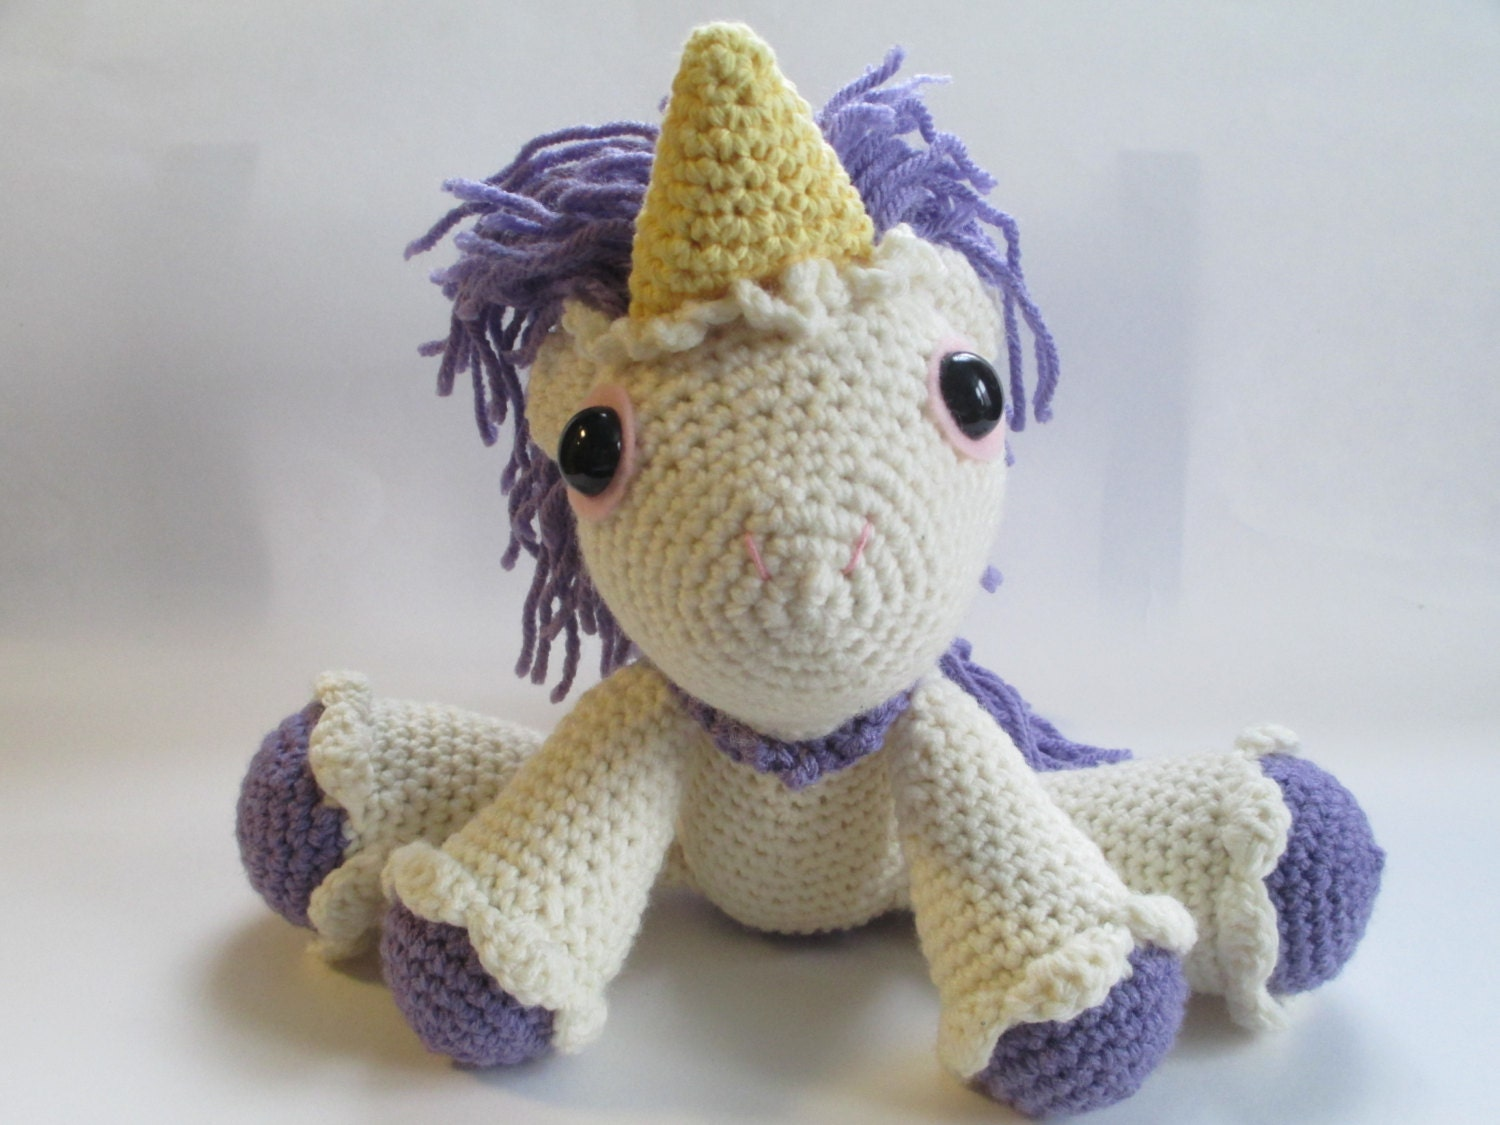 Unicorn Amigurumi Yarn Yard : Unicorn Amigurumi Crochet Stuffed Toy by NotJust4Grannys ...